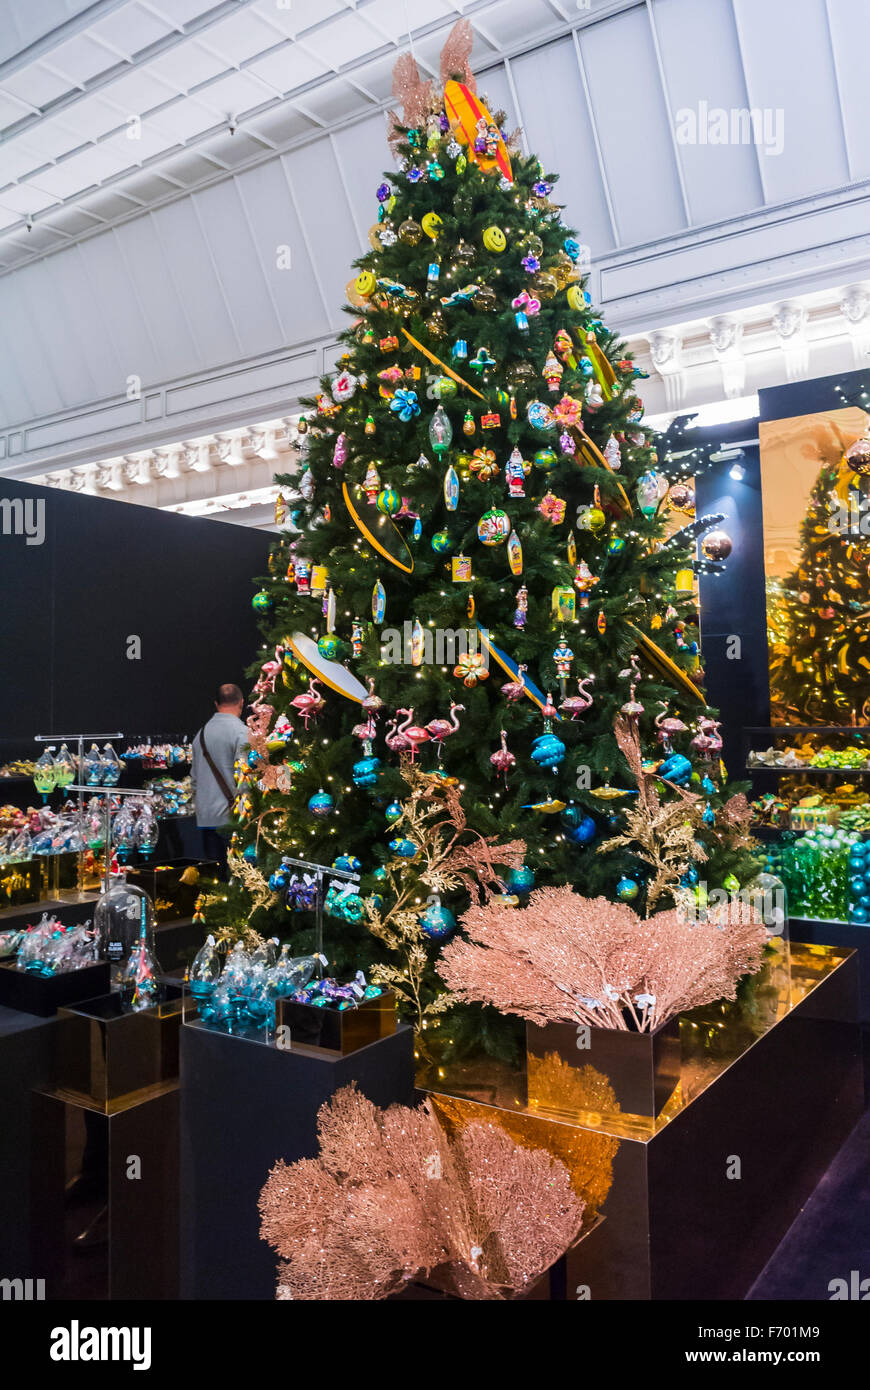 Paris France Christmas Trees on display Shopping for